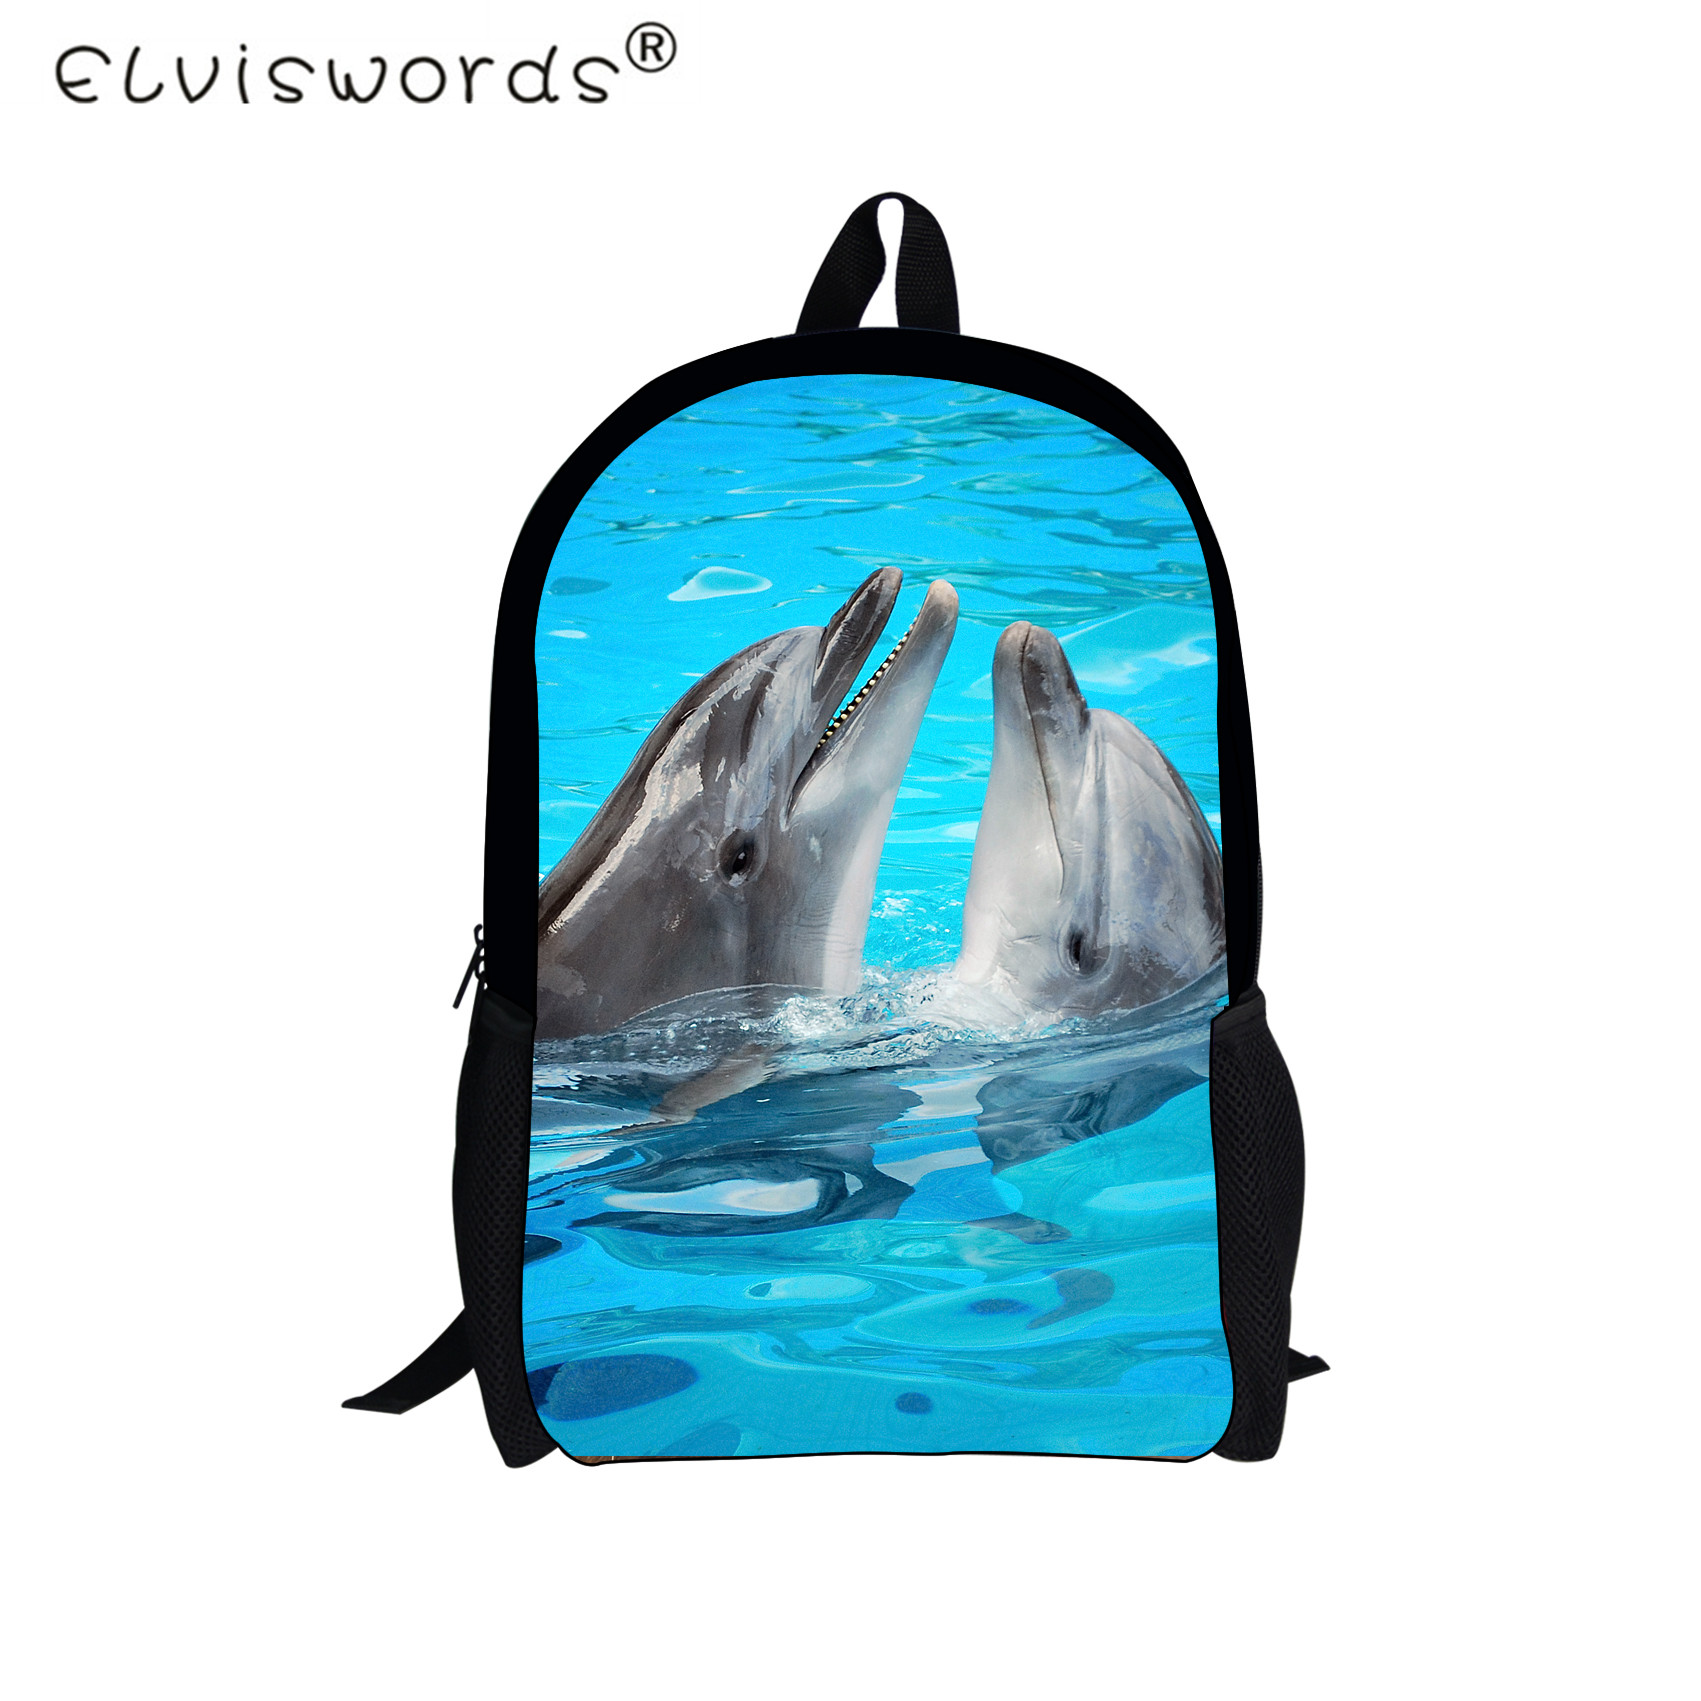 ELVISWORDS Animal Dolphin Printing Schoolbags For Teenage Girls Shark Pattern Children Schoolbags Kids Women Travel Mochila Bags